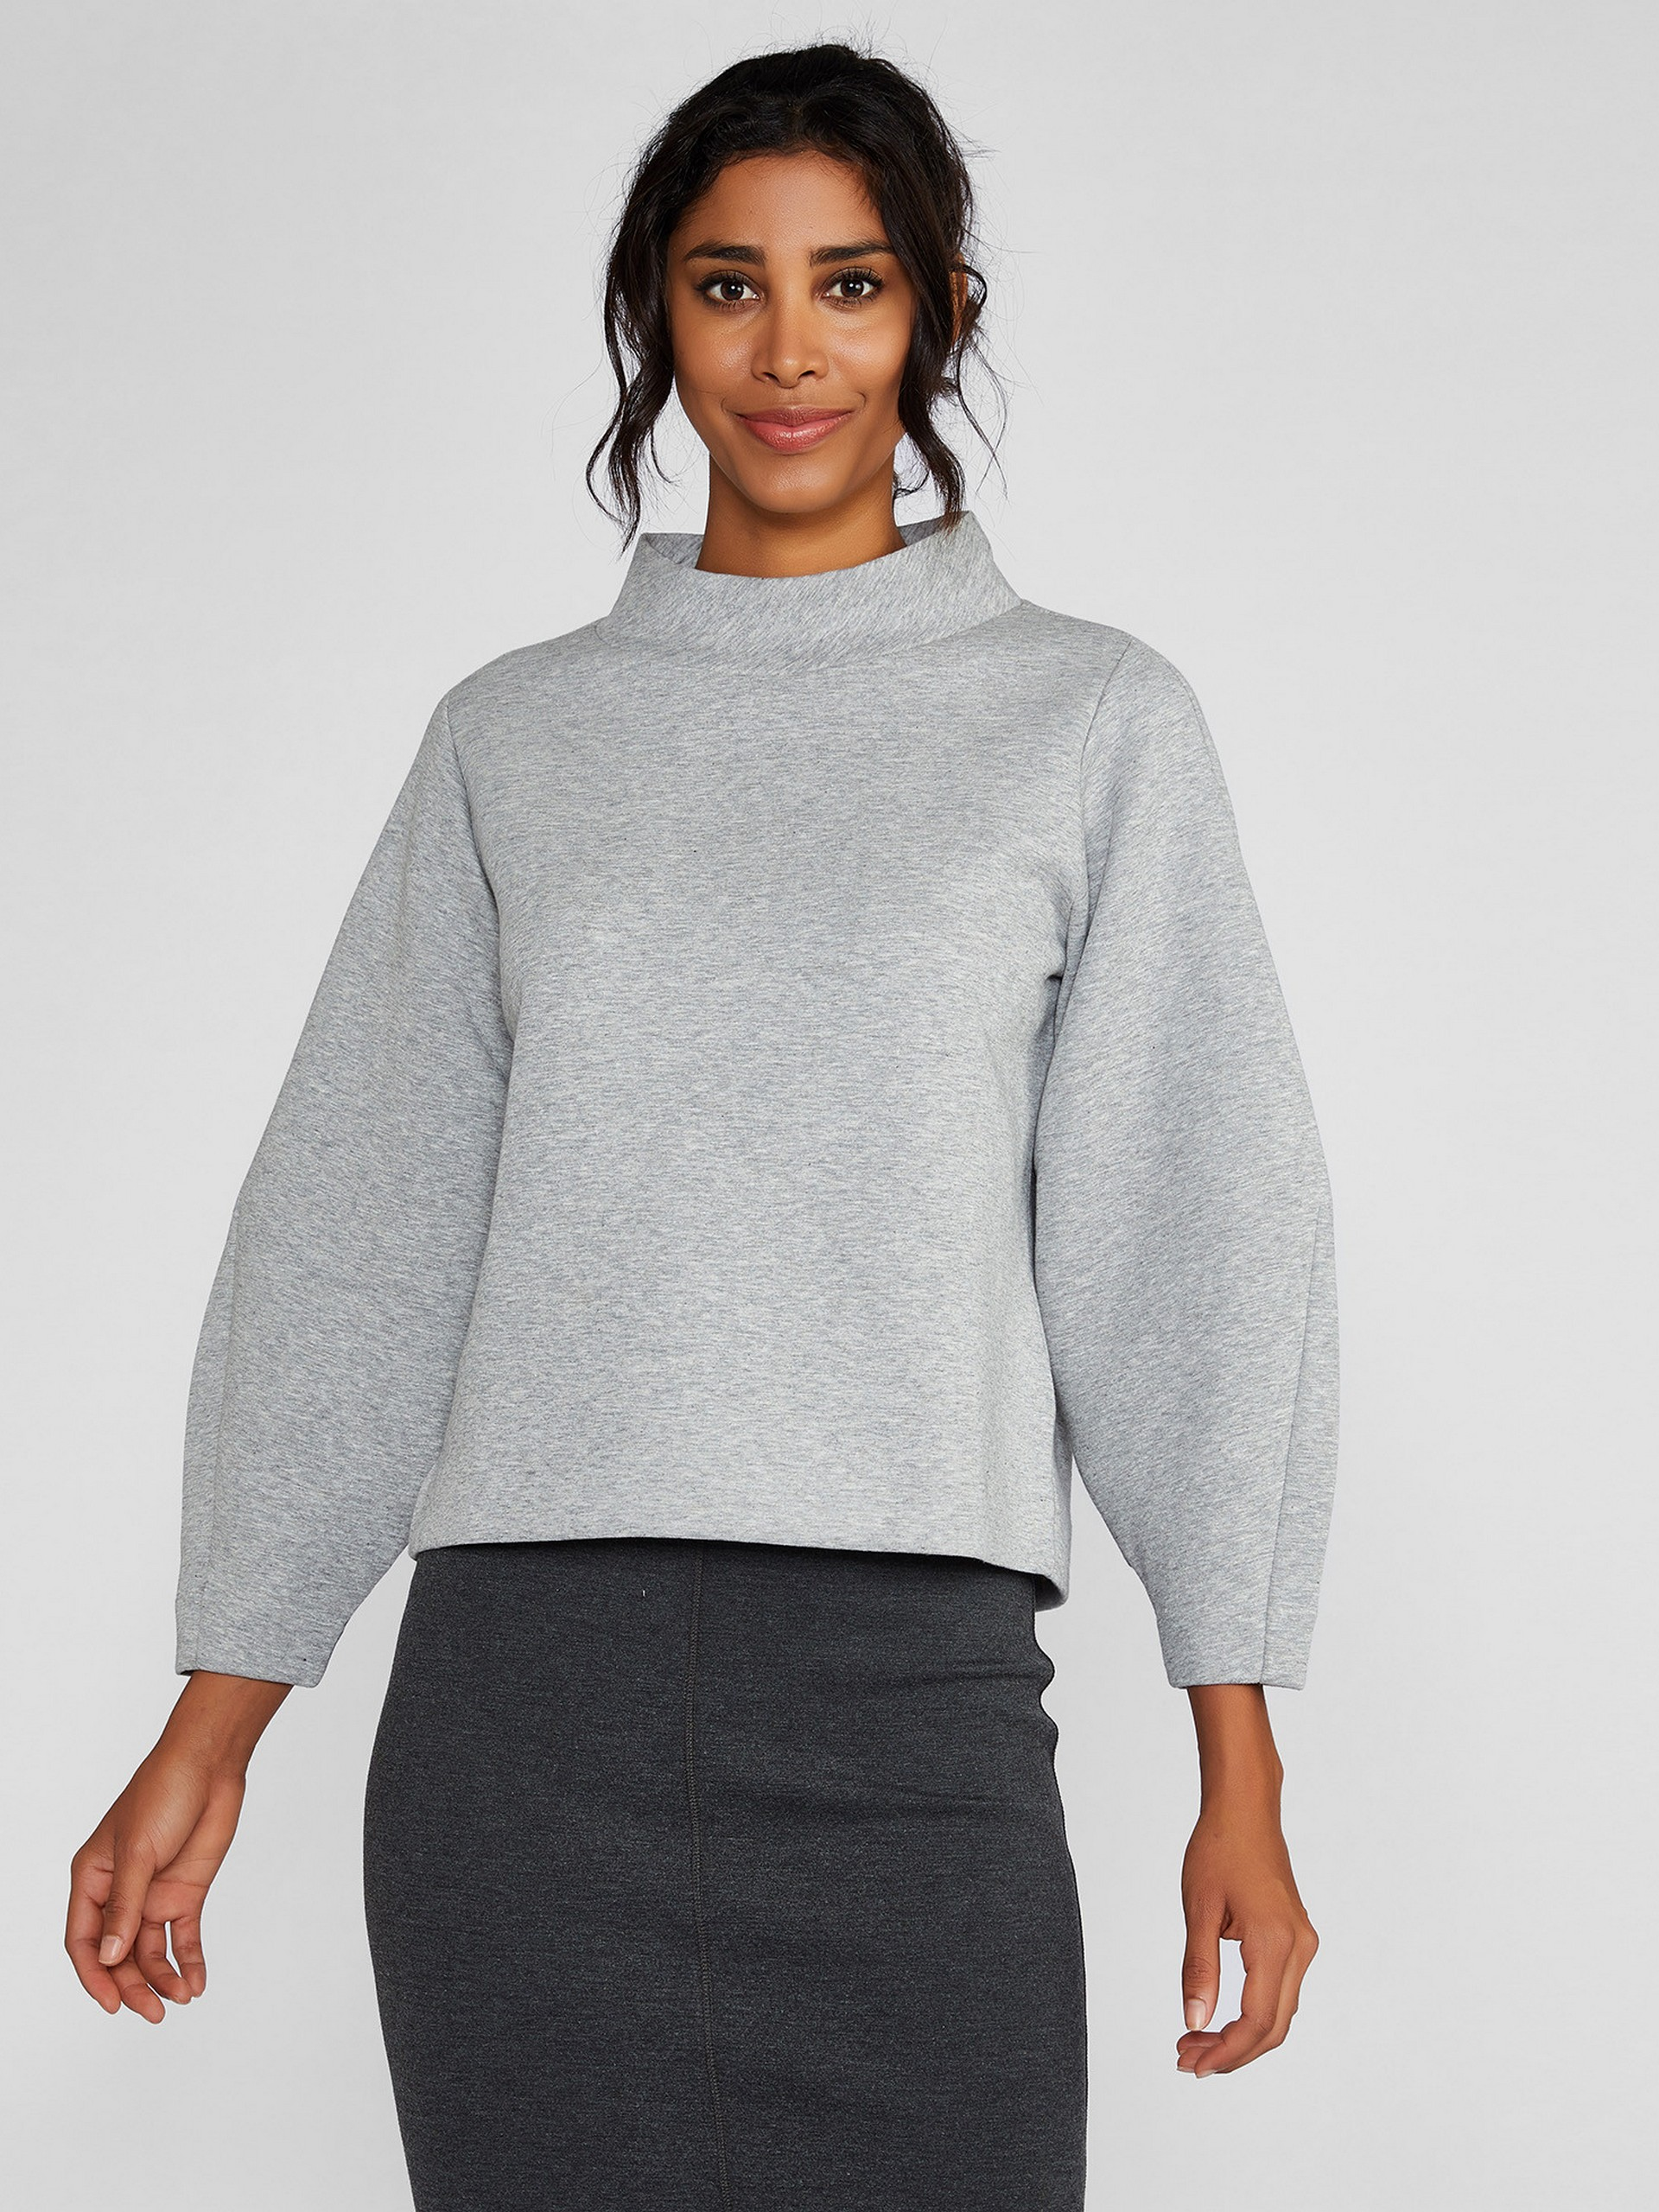 Half Turtleneck Sweatshirt With Balloon Sleeve